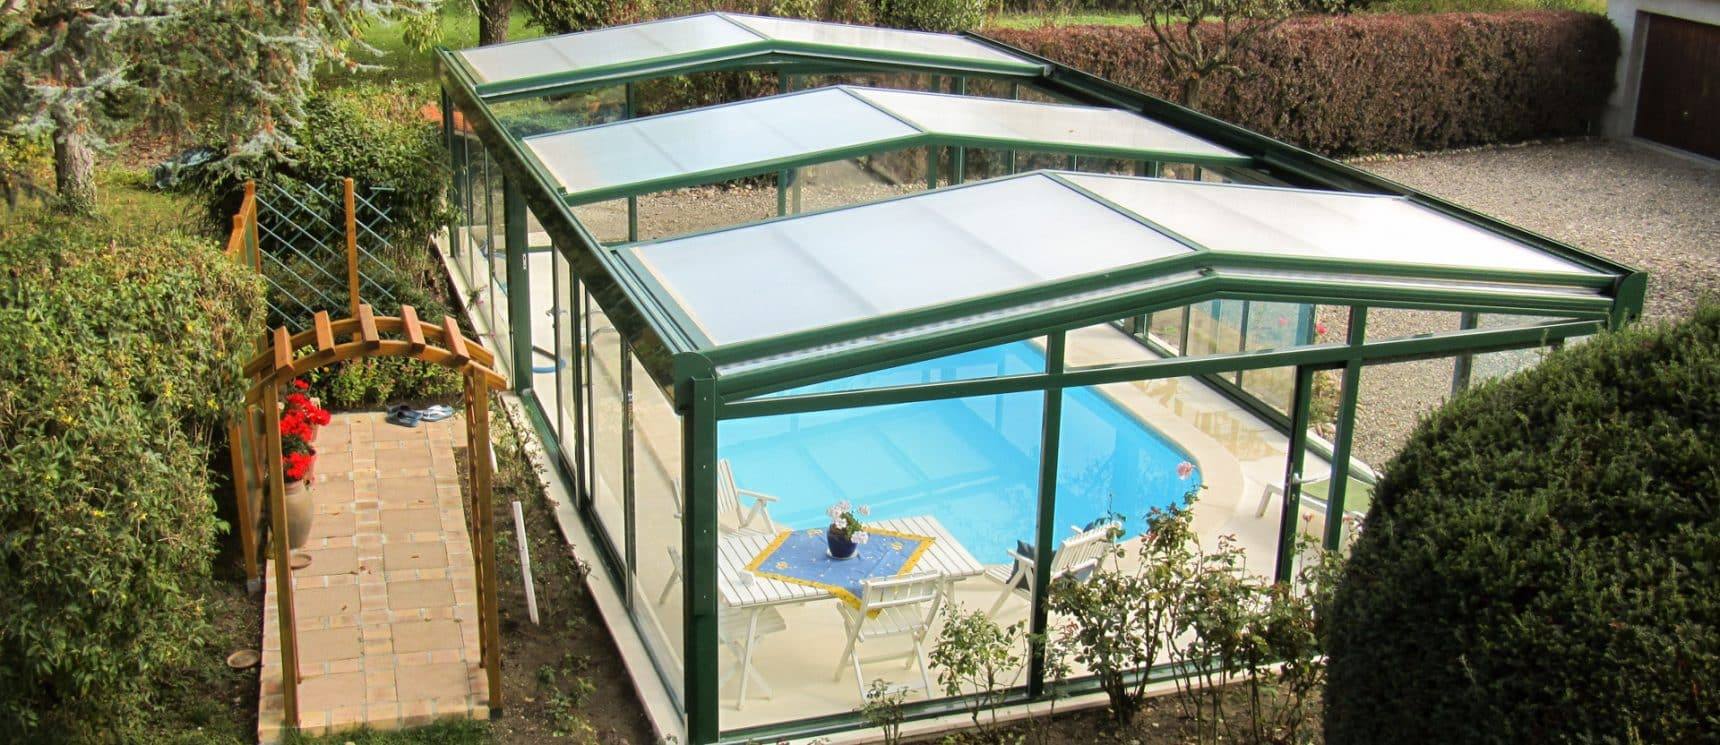 Abris de piscine visiopool abri de piscine fixe avec for Abris de piscine venus international